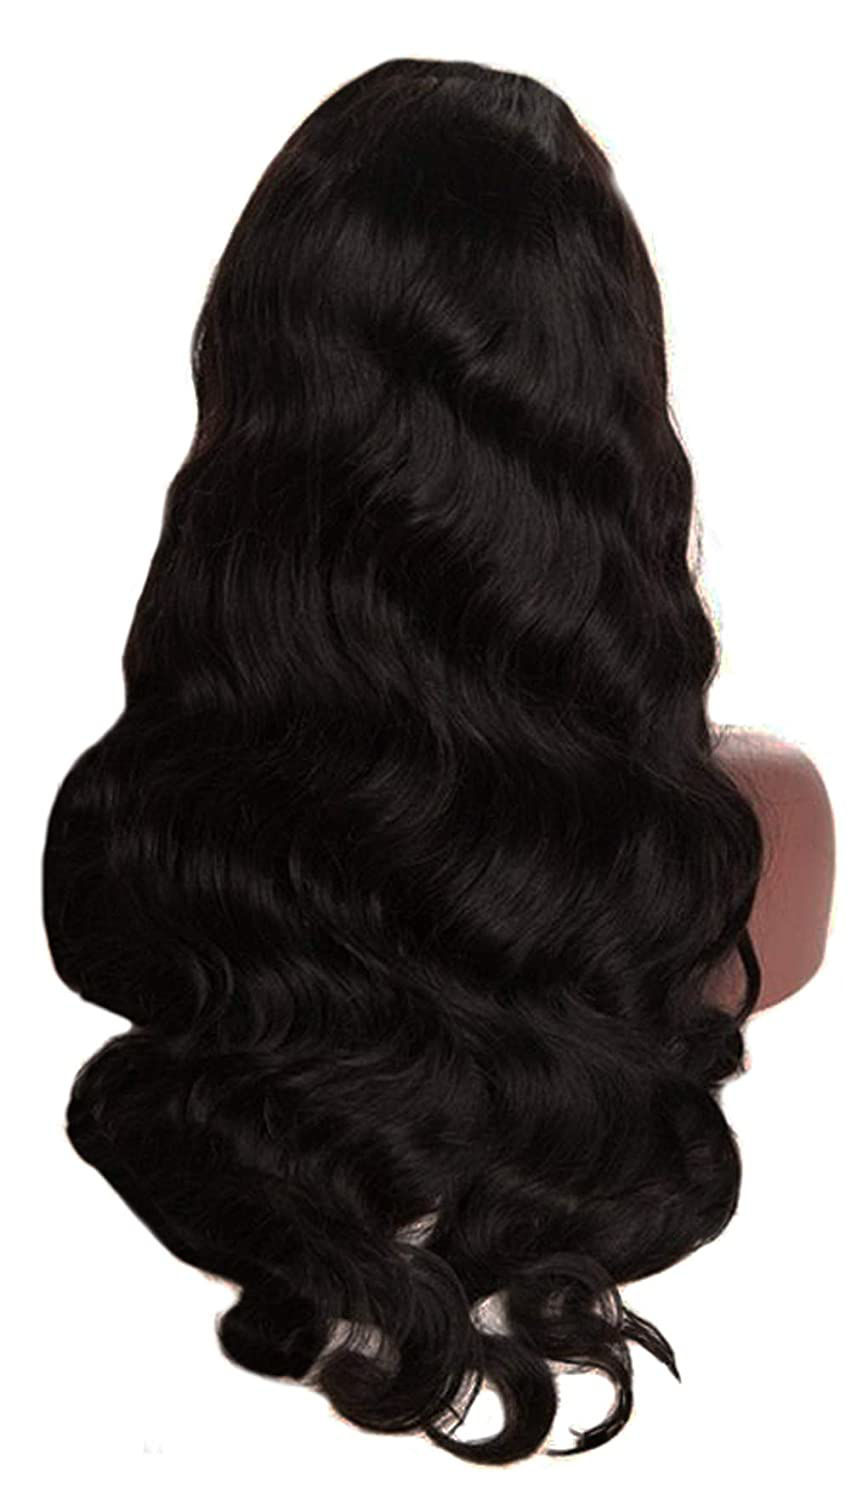 Wigs Human Hair Lace Closure Wig Body wave Deep Wave Bundles Straight Wig Virgin Hair for Black Women 3